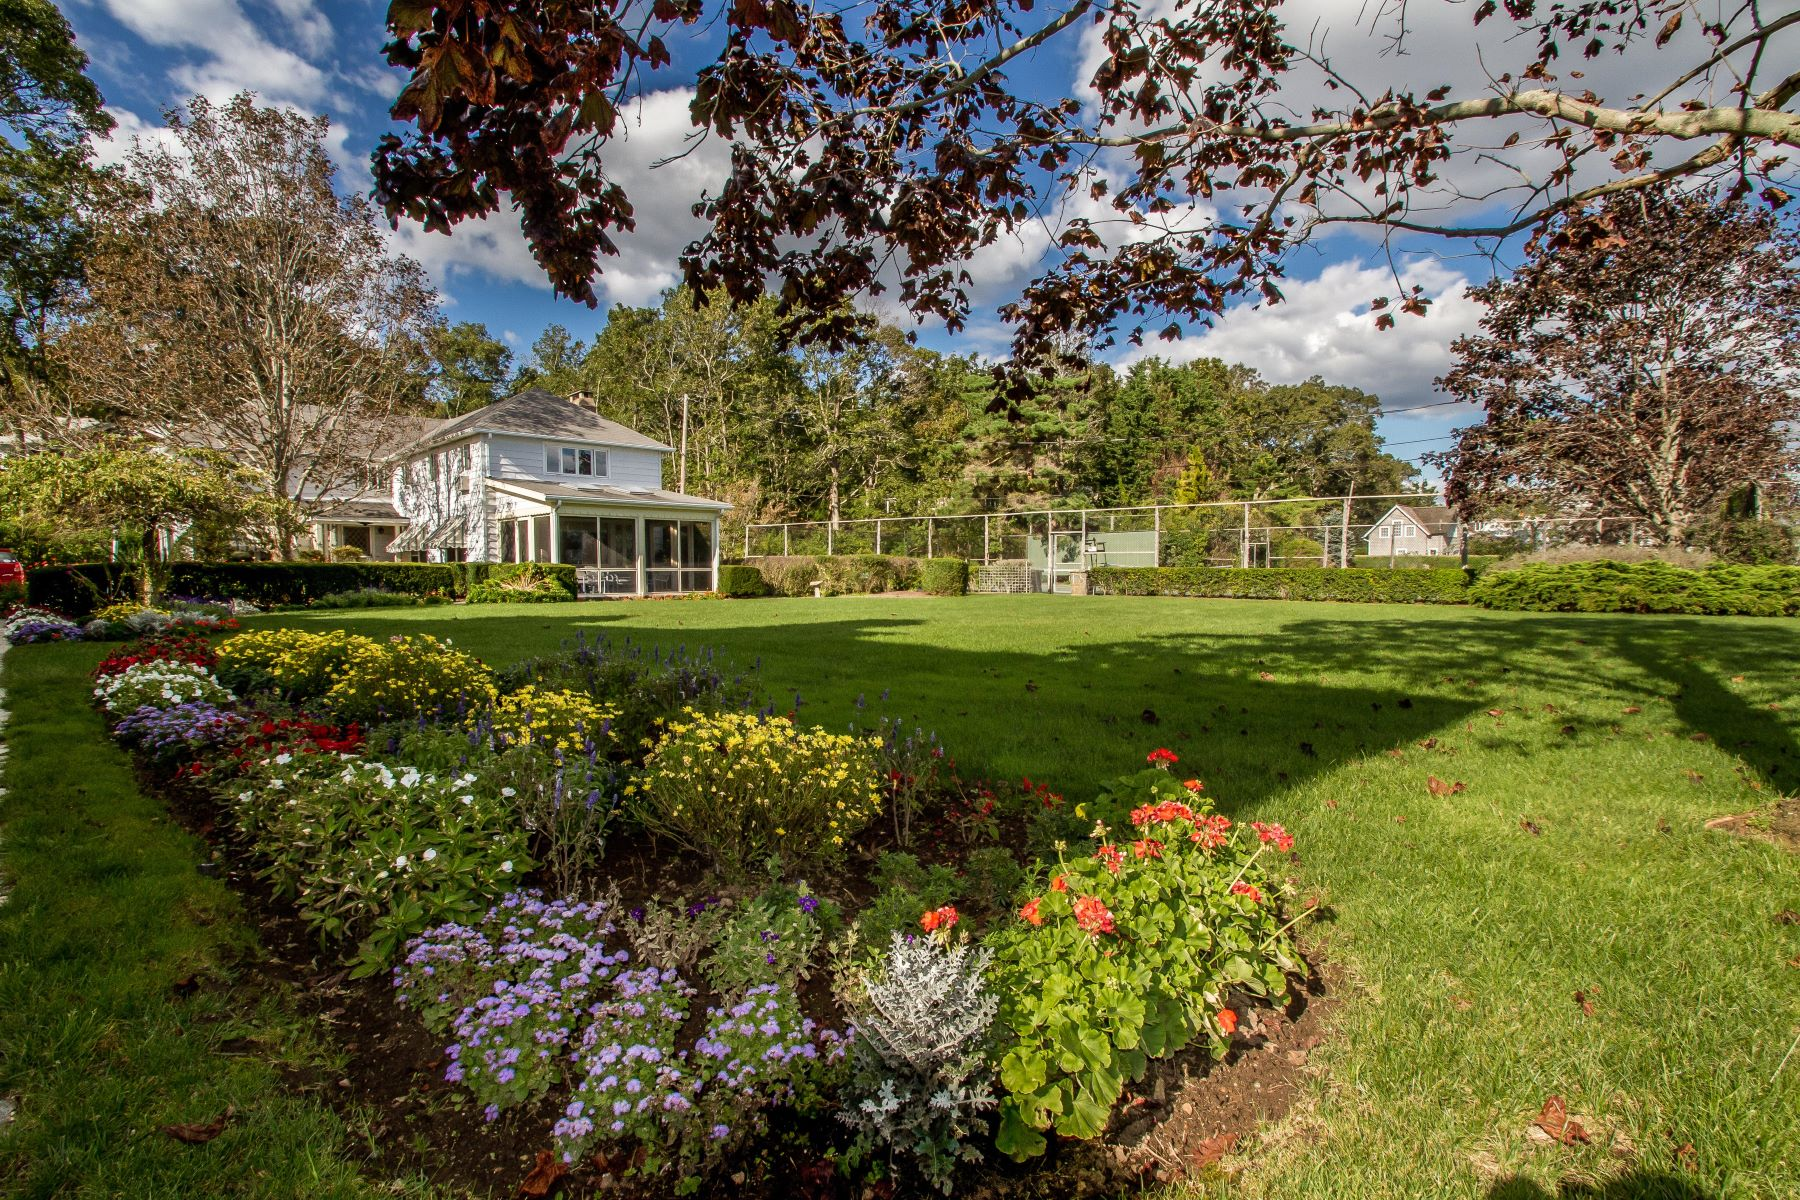 Maison unifamiliale pour l Vente à 63 Middle Beach Rd Madison, Connecticut, 06443 États-Unis